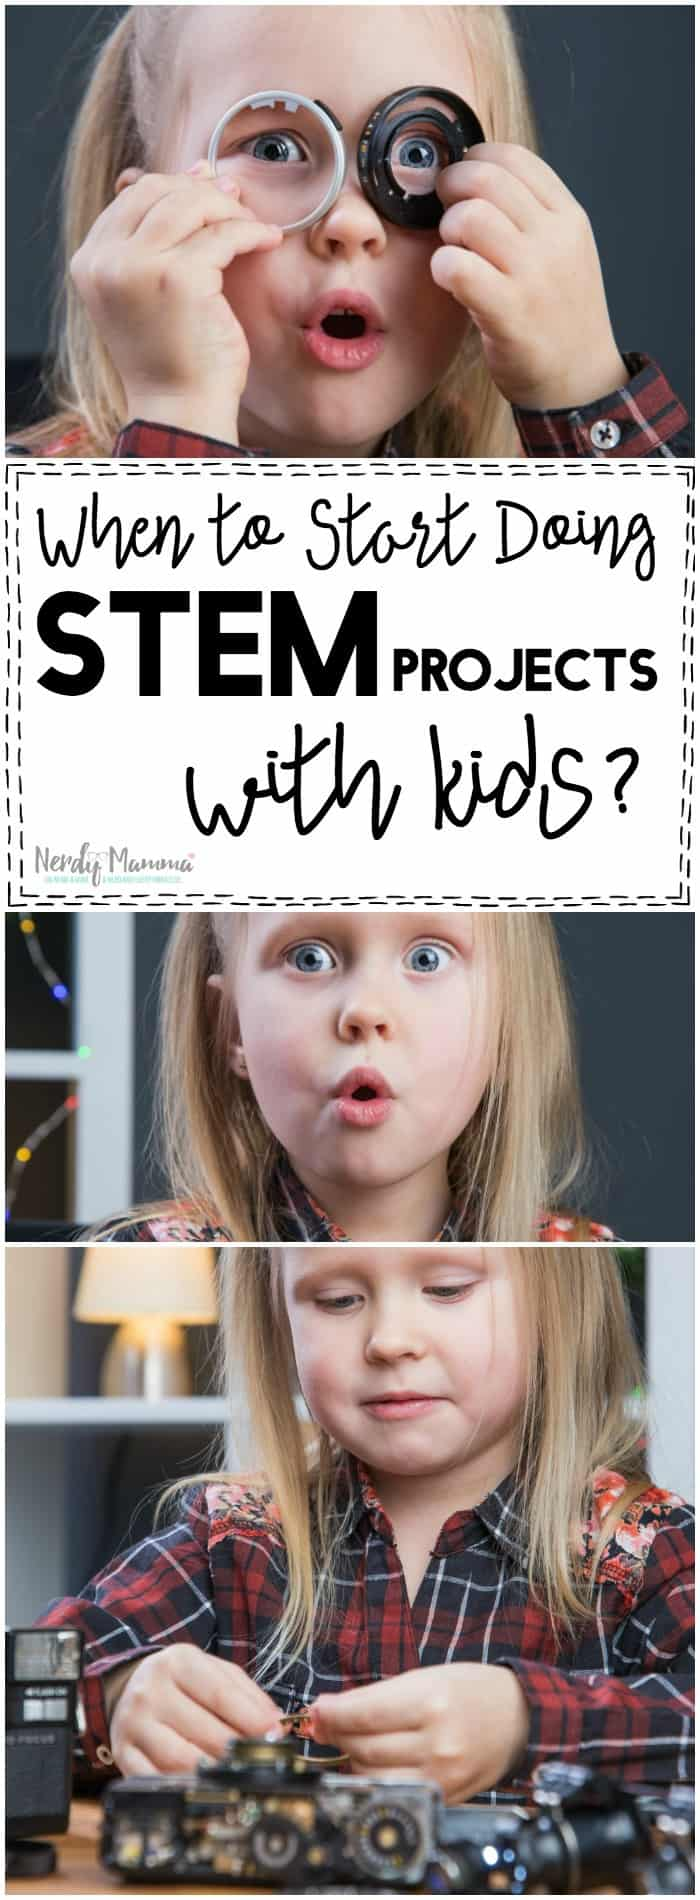 I so agree with this mom about when to start doing STEM projects with kids. So smart.